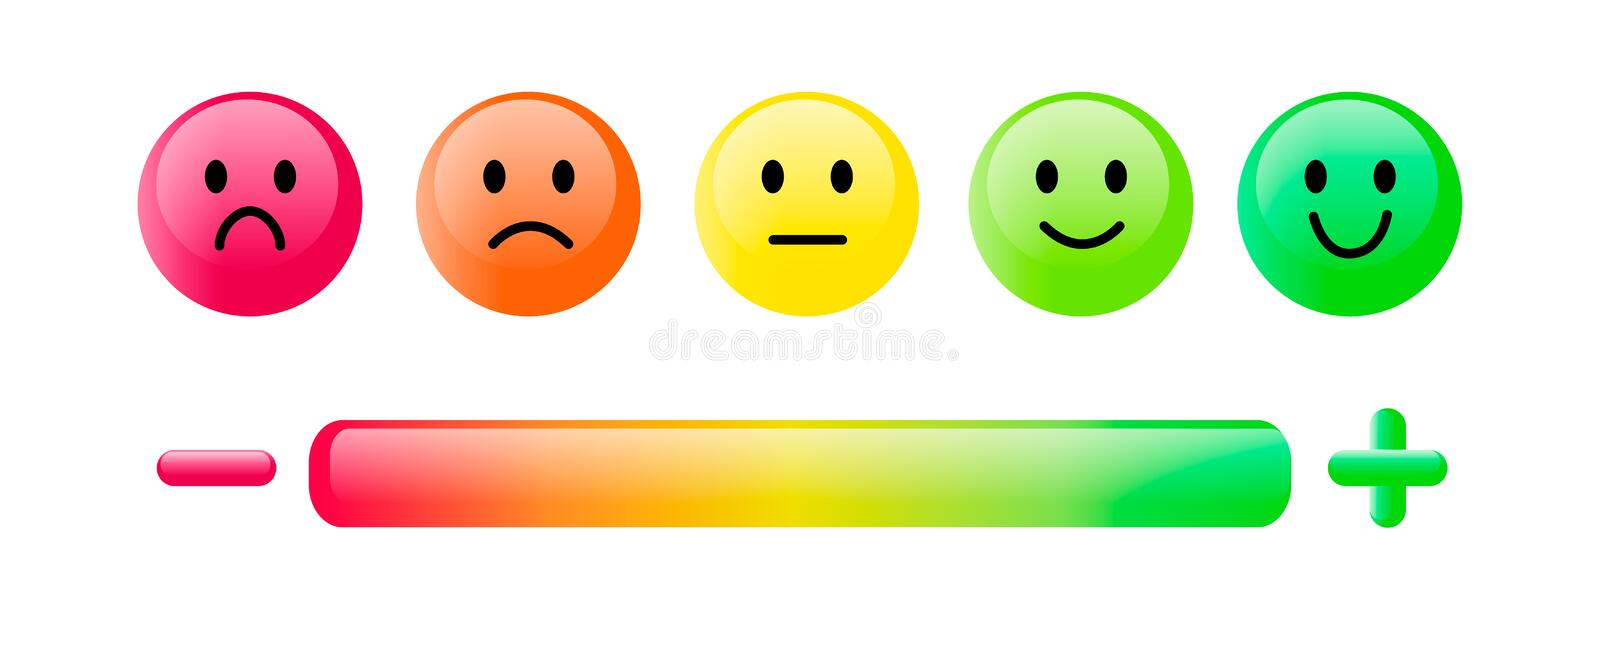 Color emoticon. Set five faces smiley scale, smile, neutral and sad in red, orange and green isolated on white with stock illustration